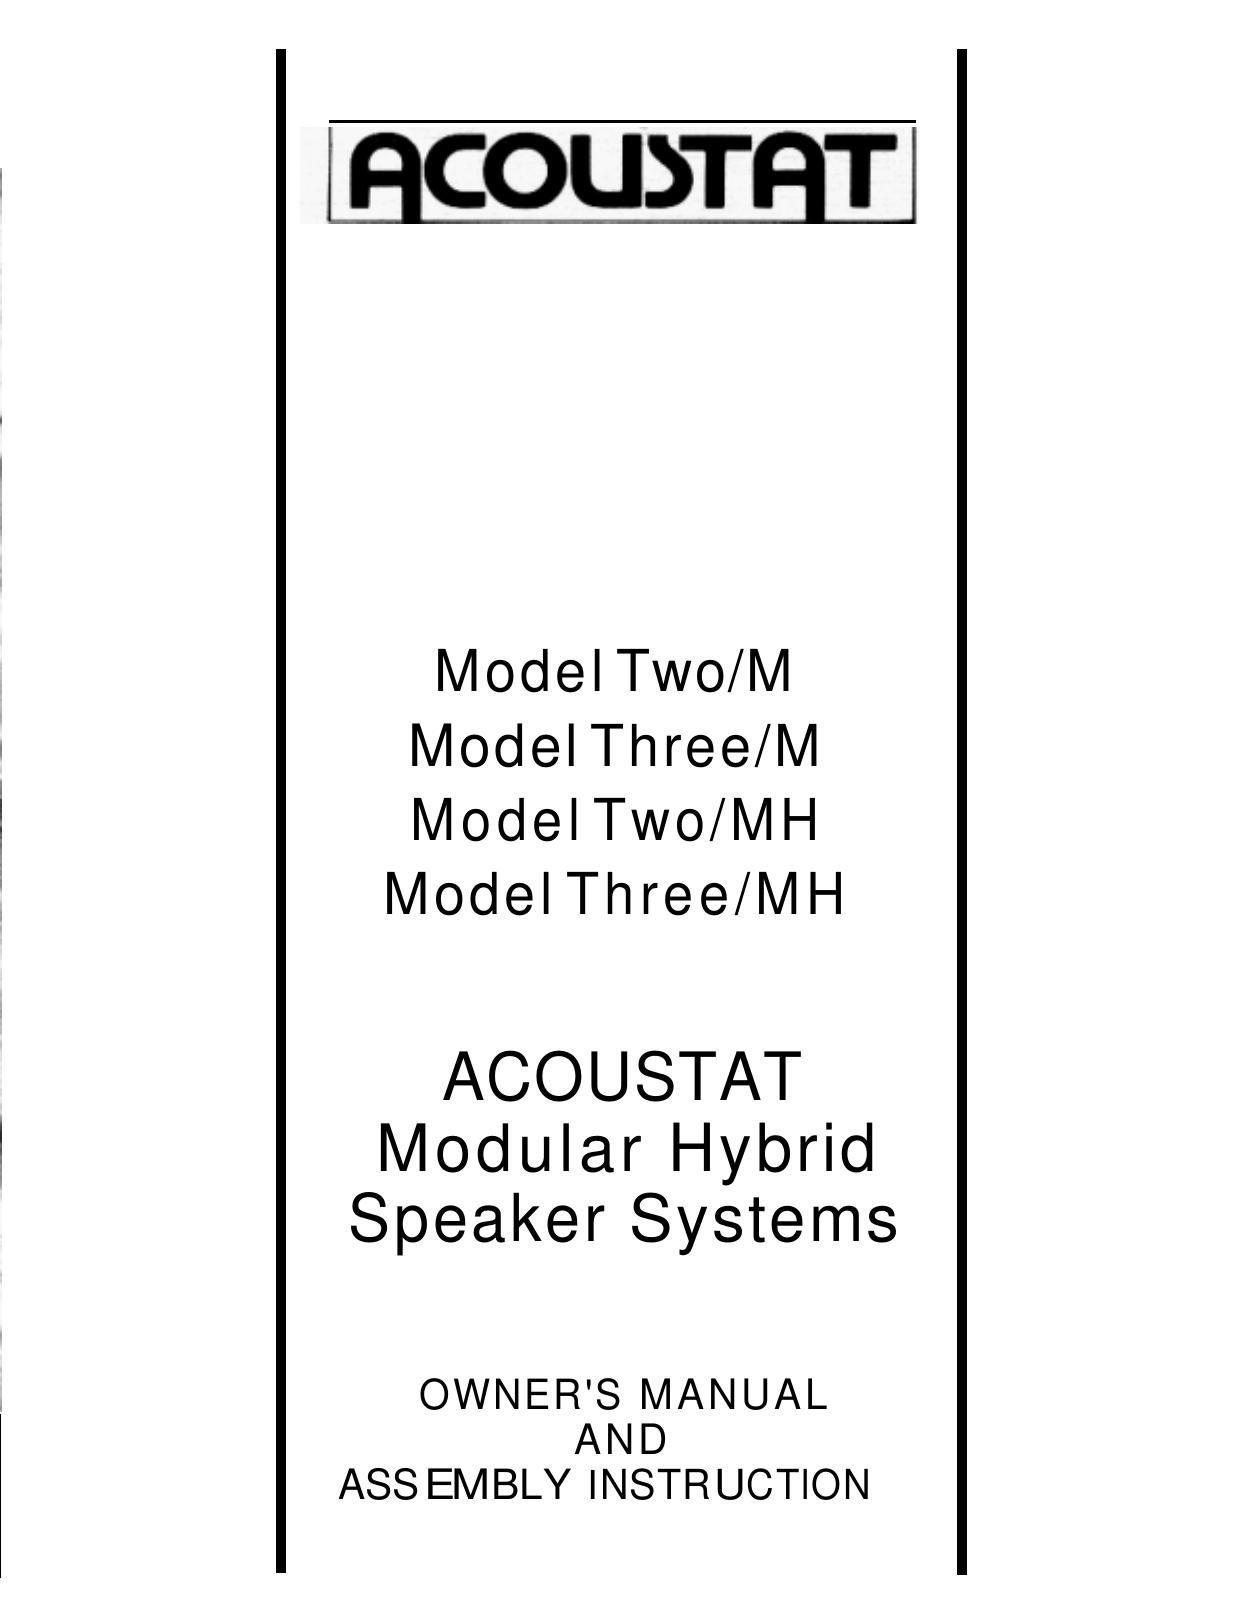 Acoustat Model 2 MH Owners Manual